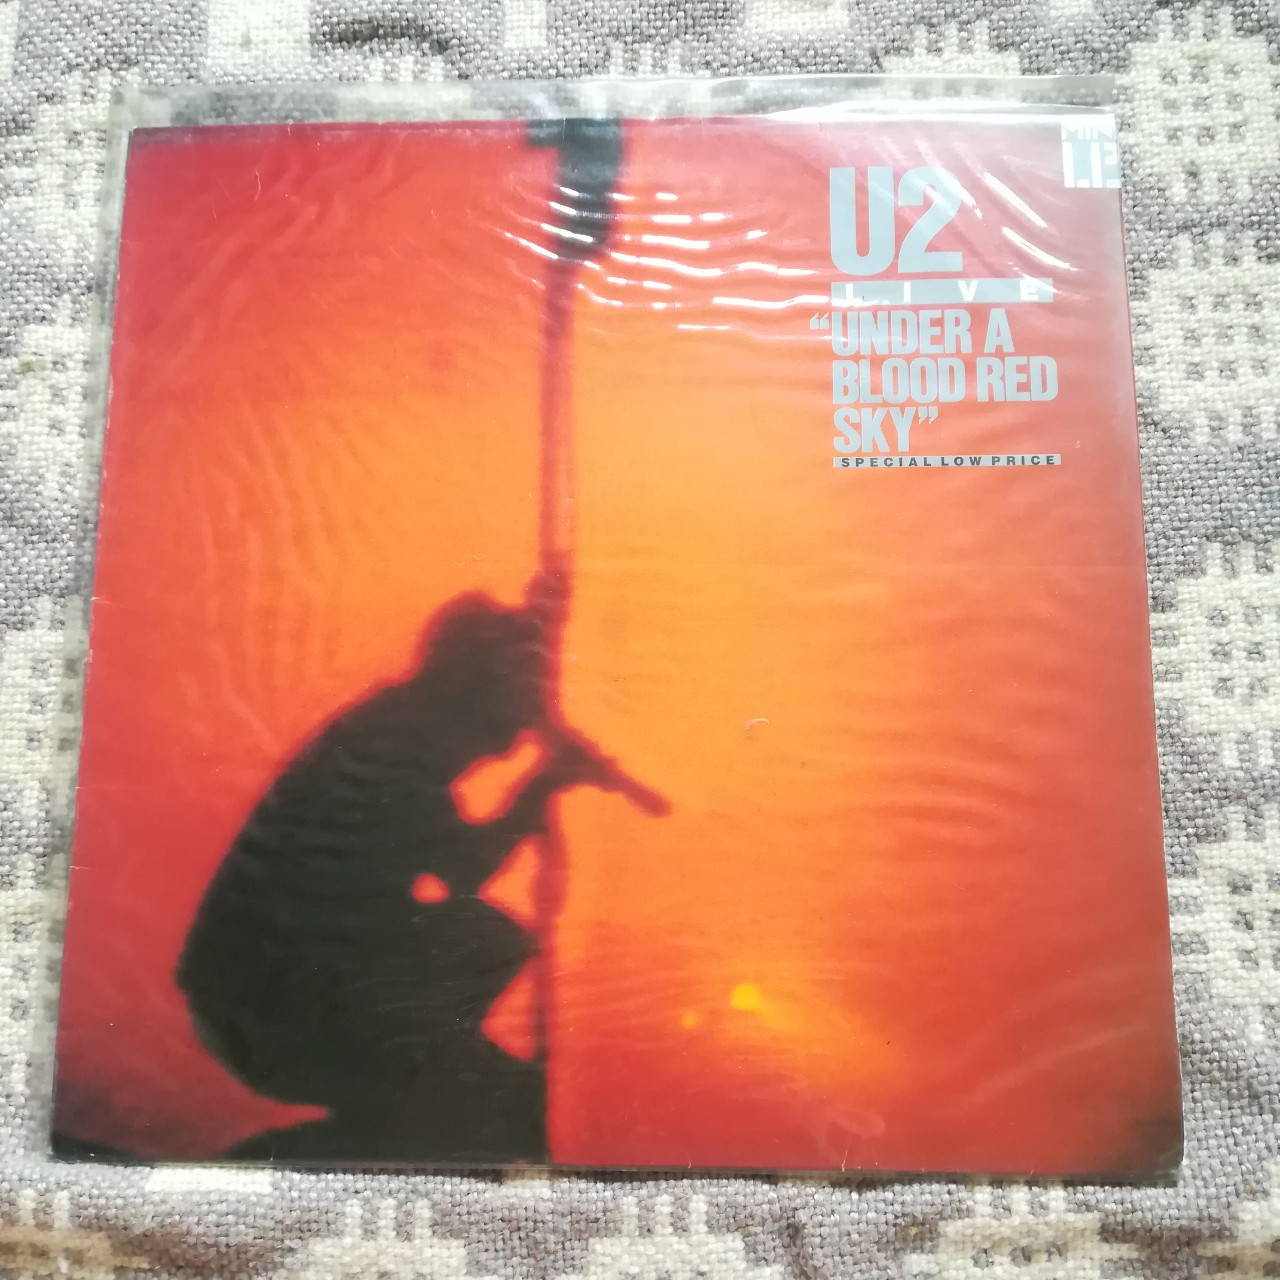 U2 - Under A Blood Red Sky, live recording 12